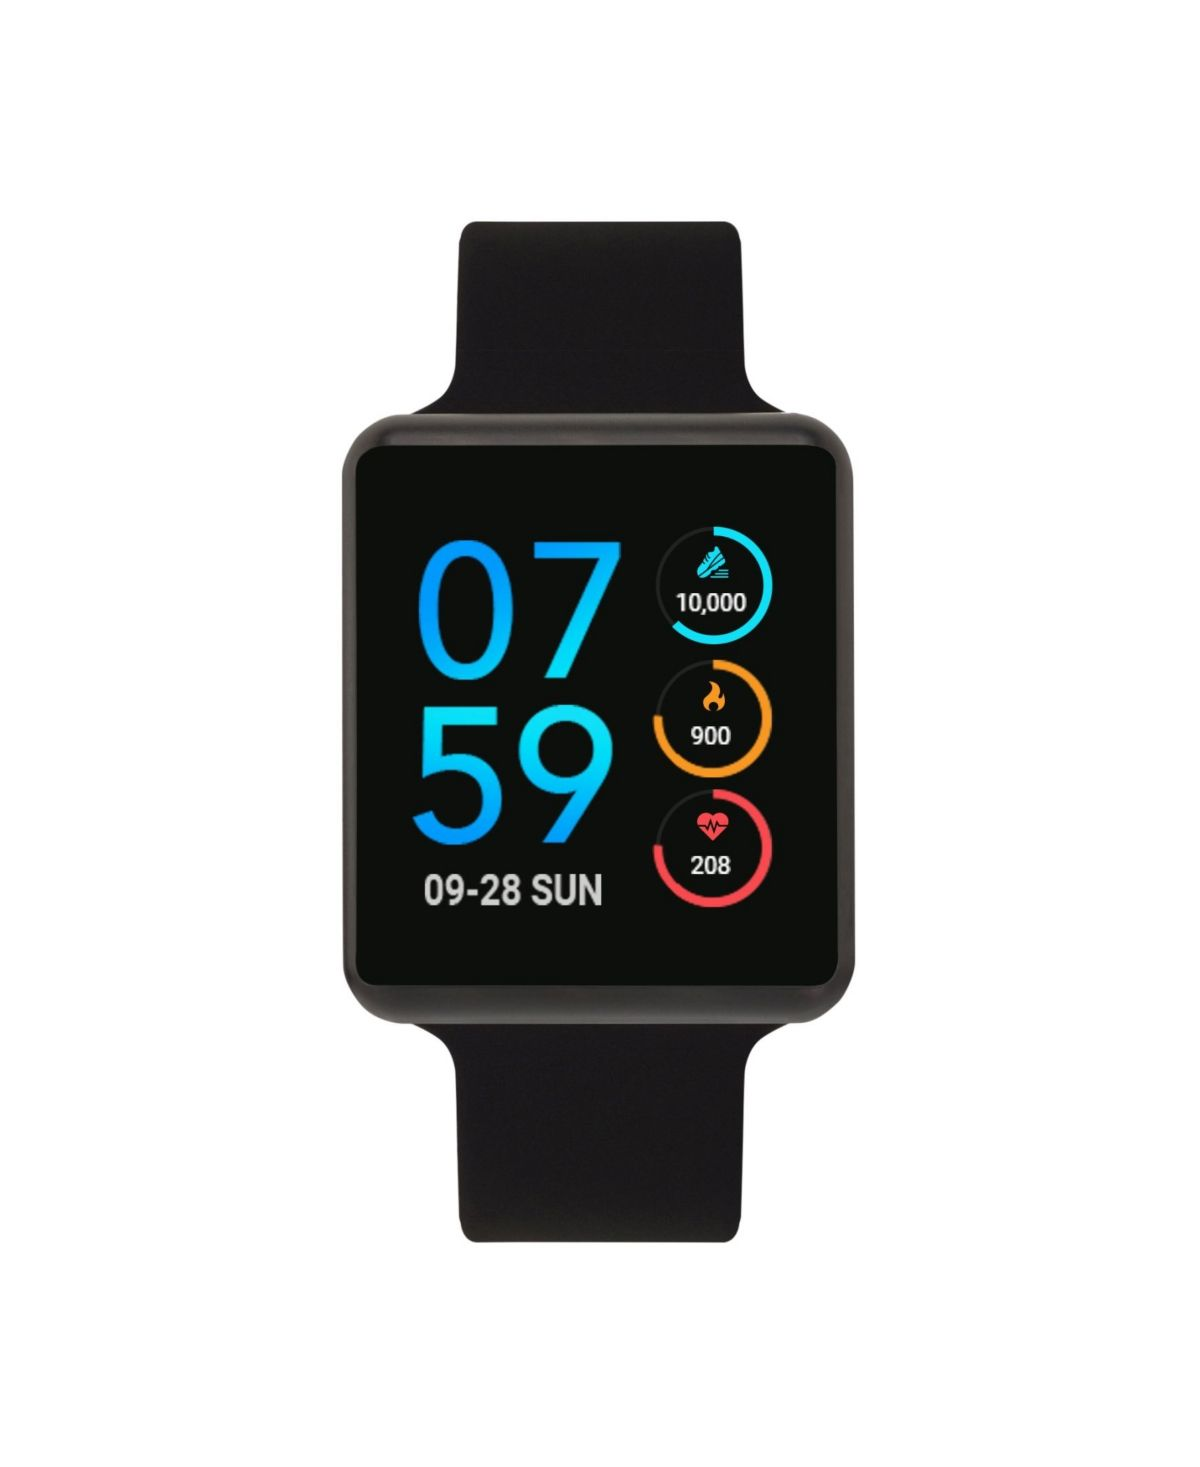 The iTouch Air Special Edition is perfect for monitoring your fitness goals and also displaying all your daily notifications as they arise. The watch has an extended battery life to keep you going all day long. Style #41101B-51-003.